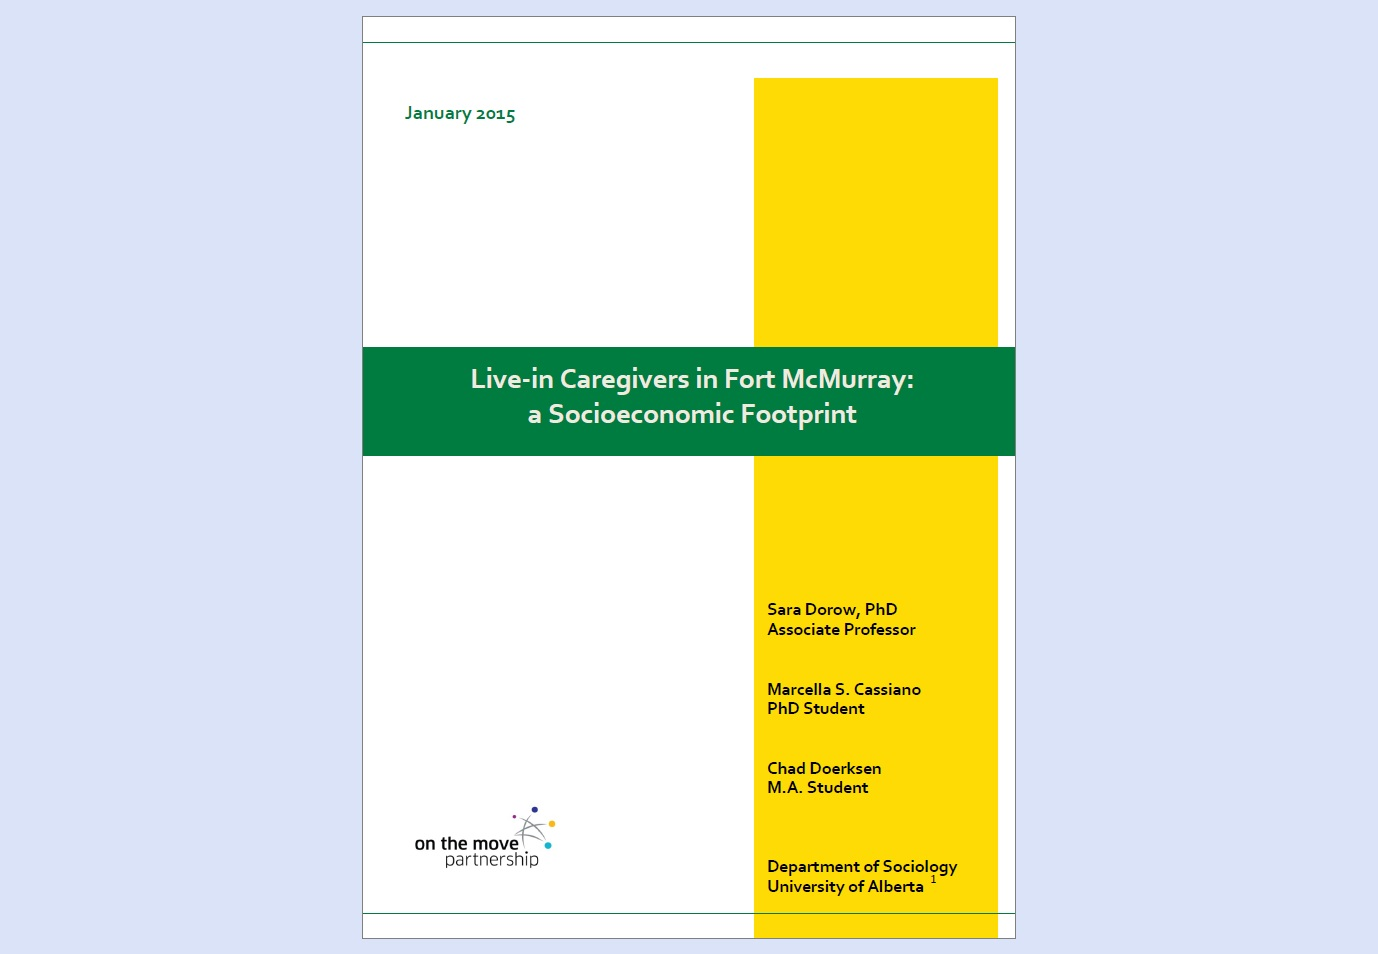 """Live-in Caregivers in Fort McMurray"" report cover / Couverture du rapport « Live-in Caregivers in Fort McMurray »"